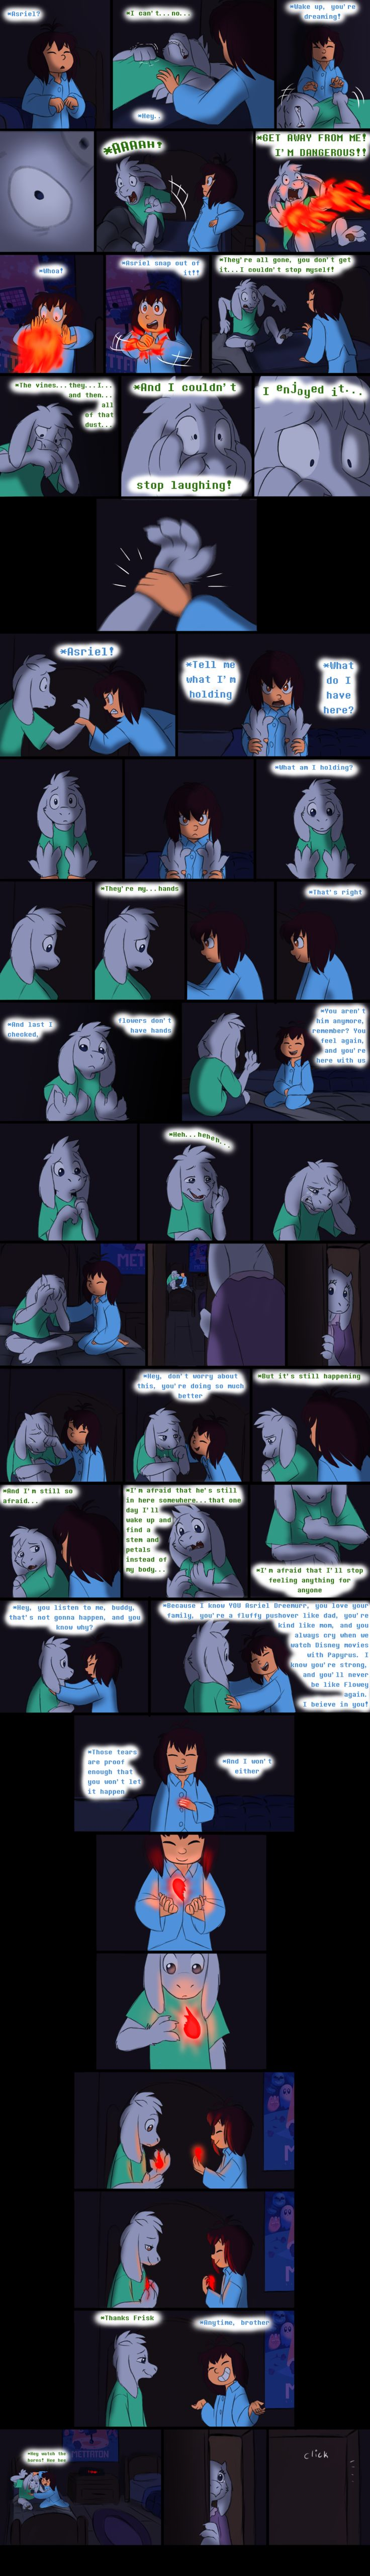 Endertale - Page 16 by TC-96 on DeviantArt